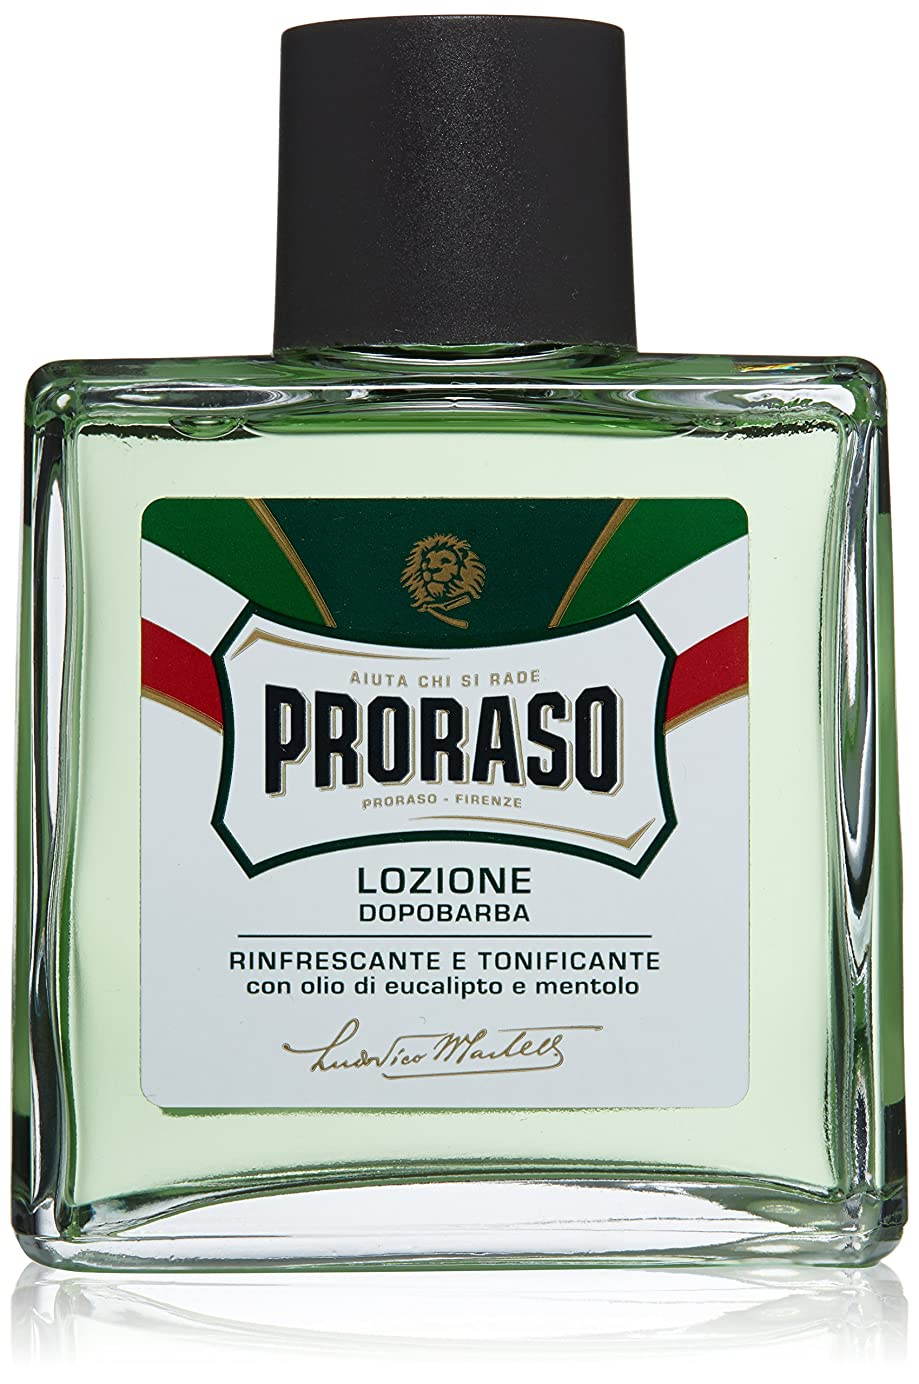 Proraso アフター シェイブ ローション 並行輸入品 Proraso Aftershave Lotion Refresh 100 ml